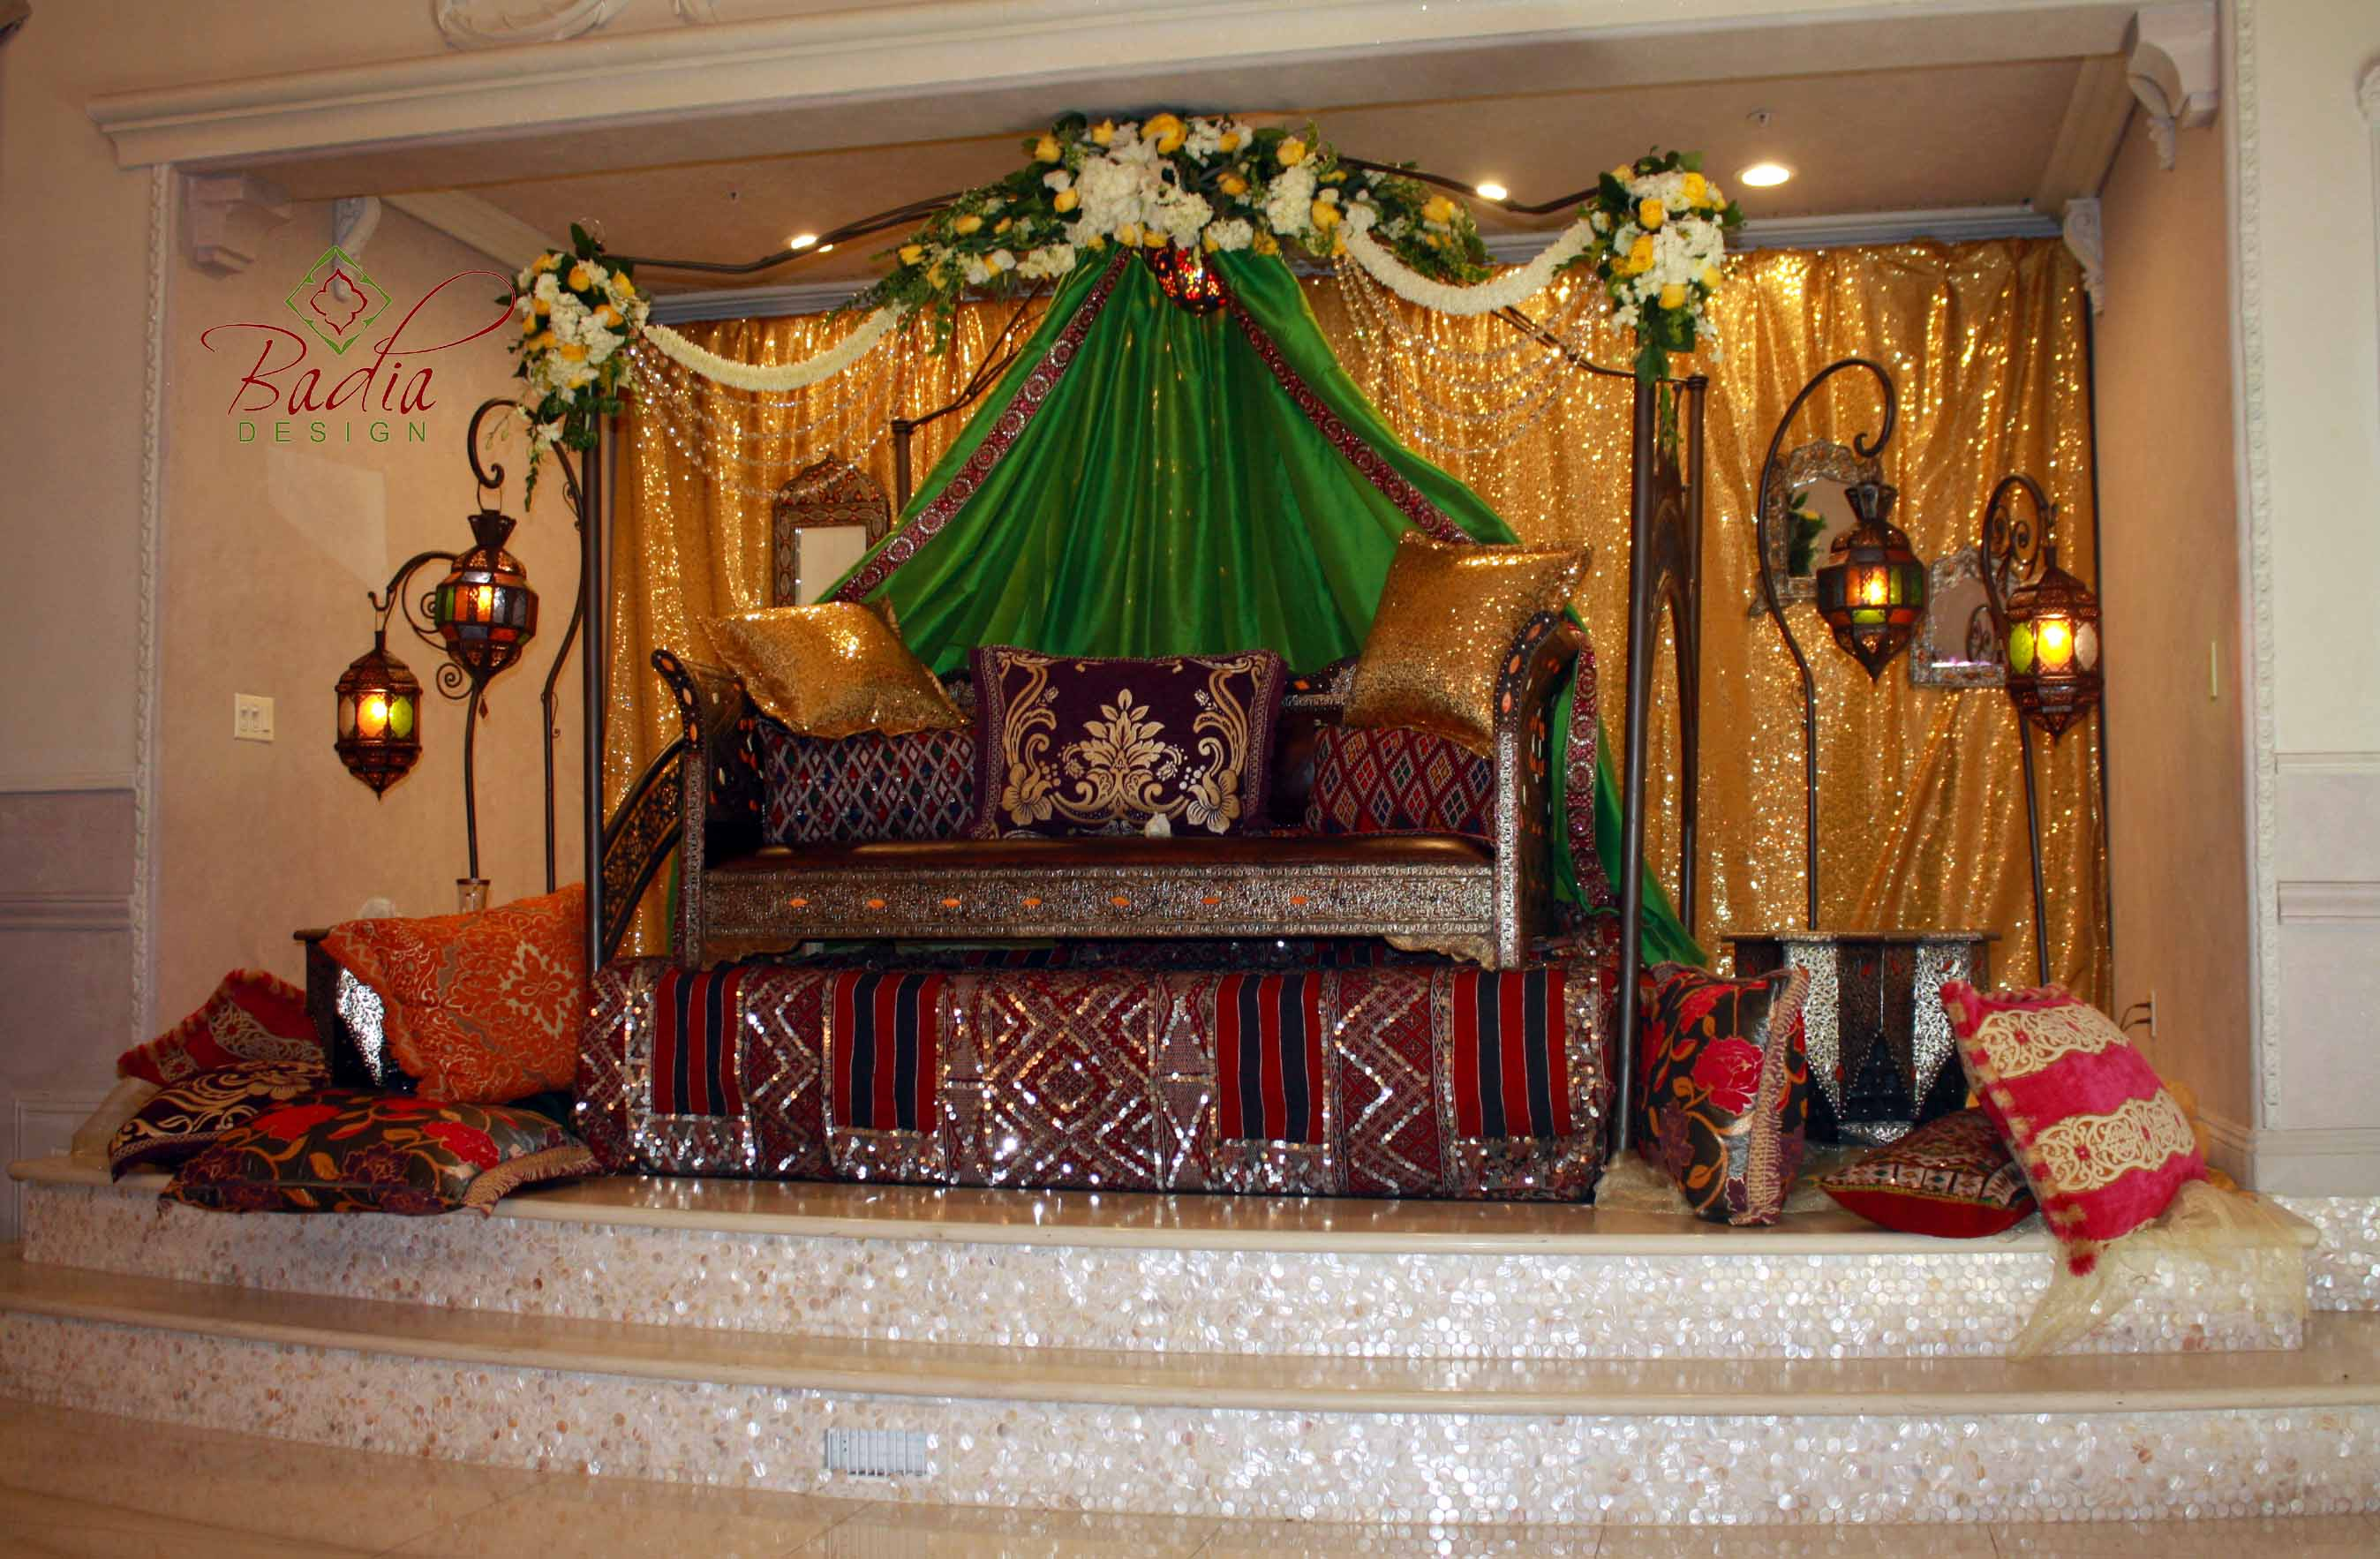 Moroccan Wedding Design from Badia Design Inc.